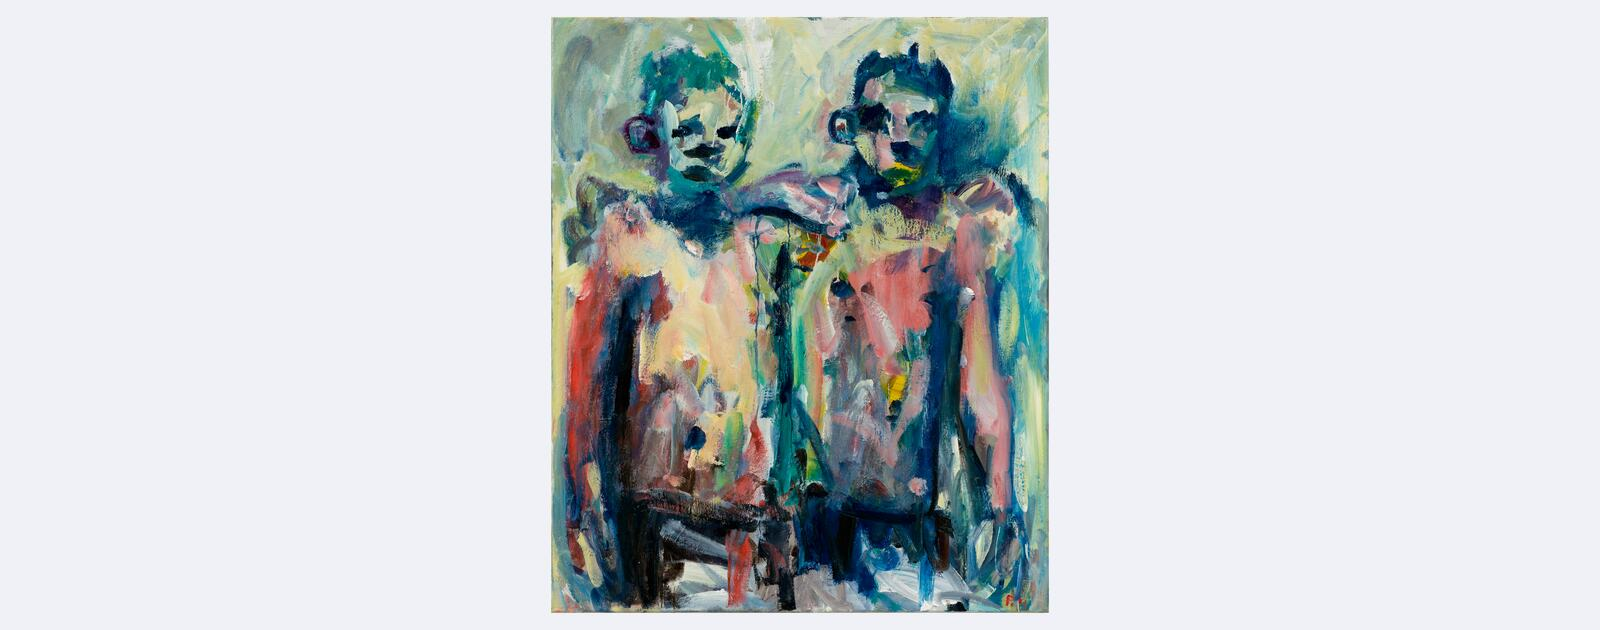 Paul Housley, Two Painters, 2019